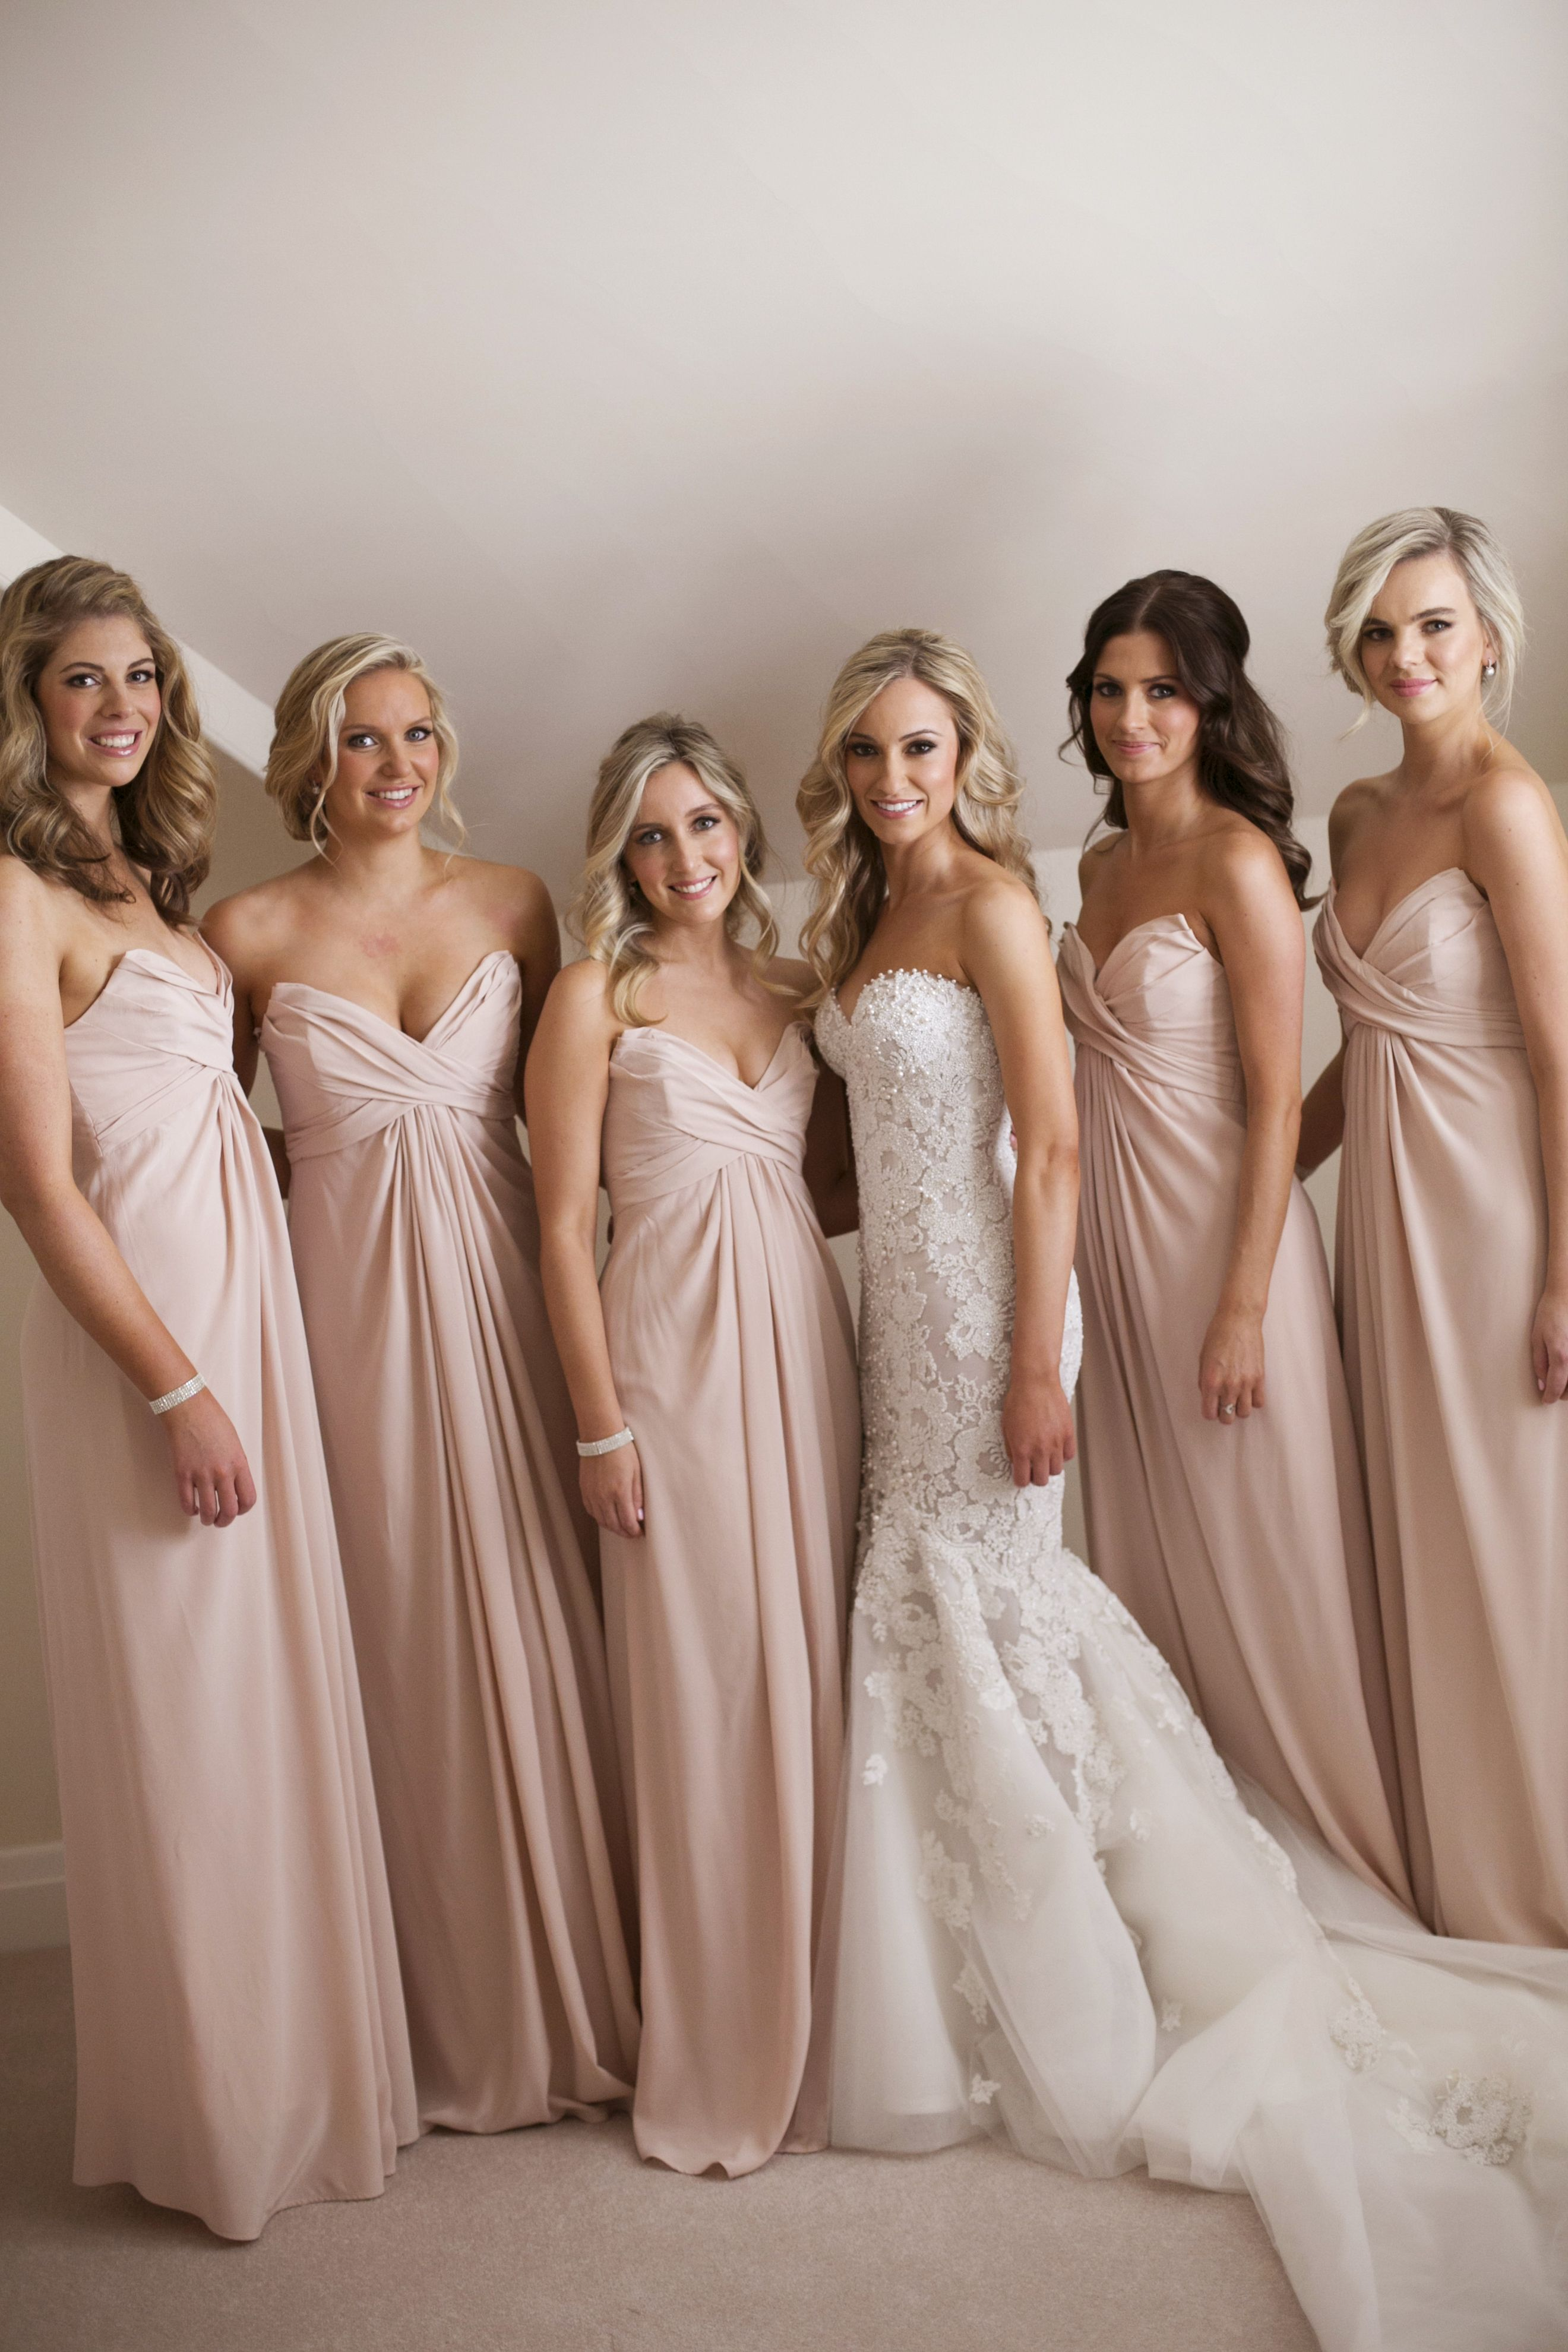 Bride in Steven Khalil and bridesmaids in blush dressess | itakeyou.co.uk